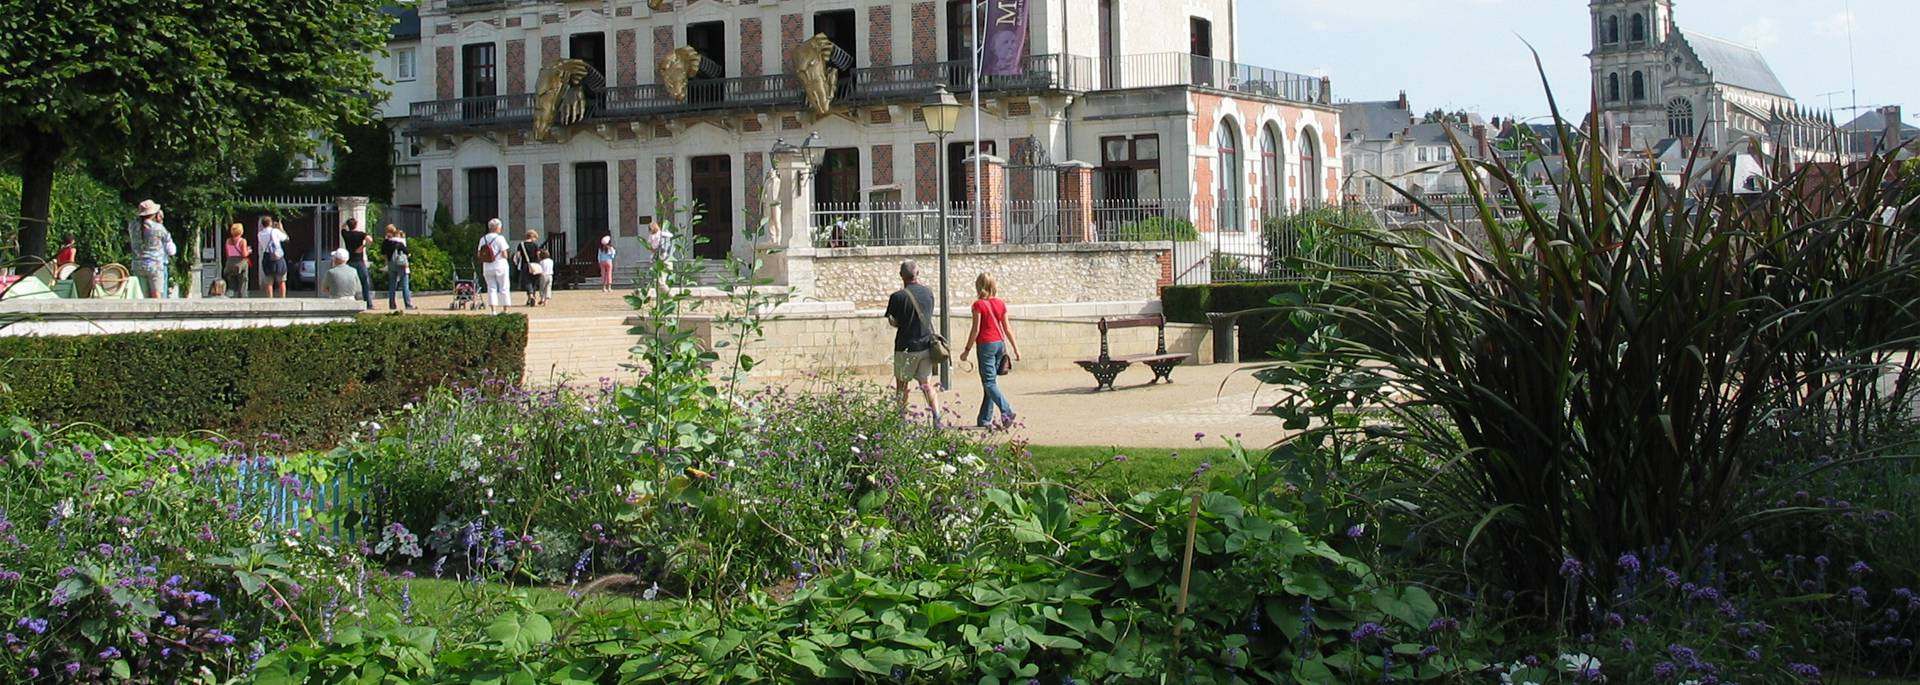 Gardens of Saint Sauveur and the Maison de la Magie